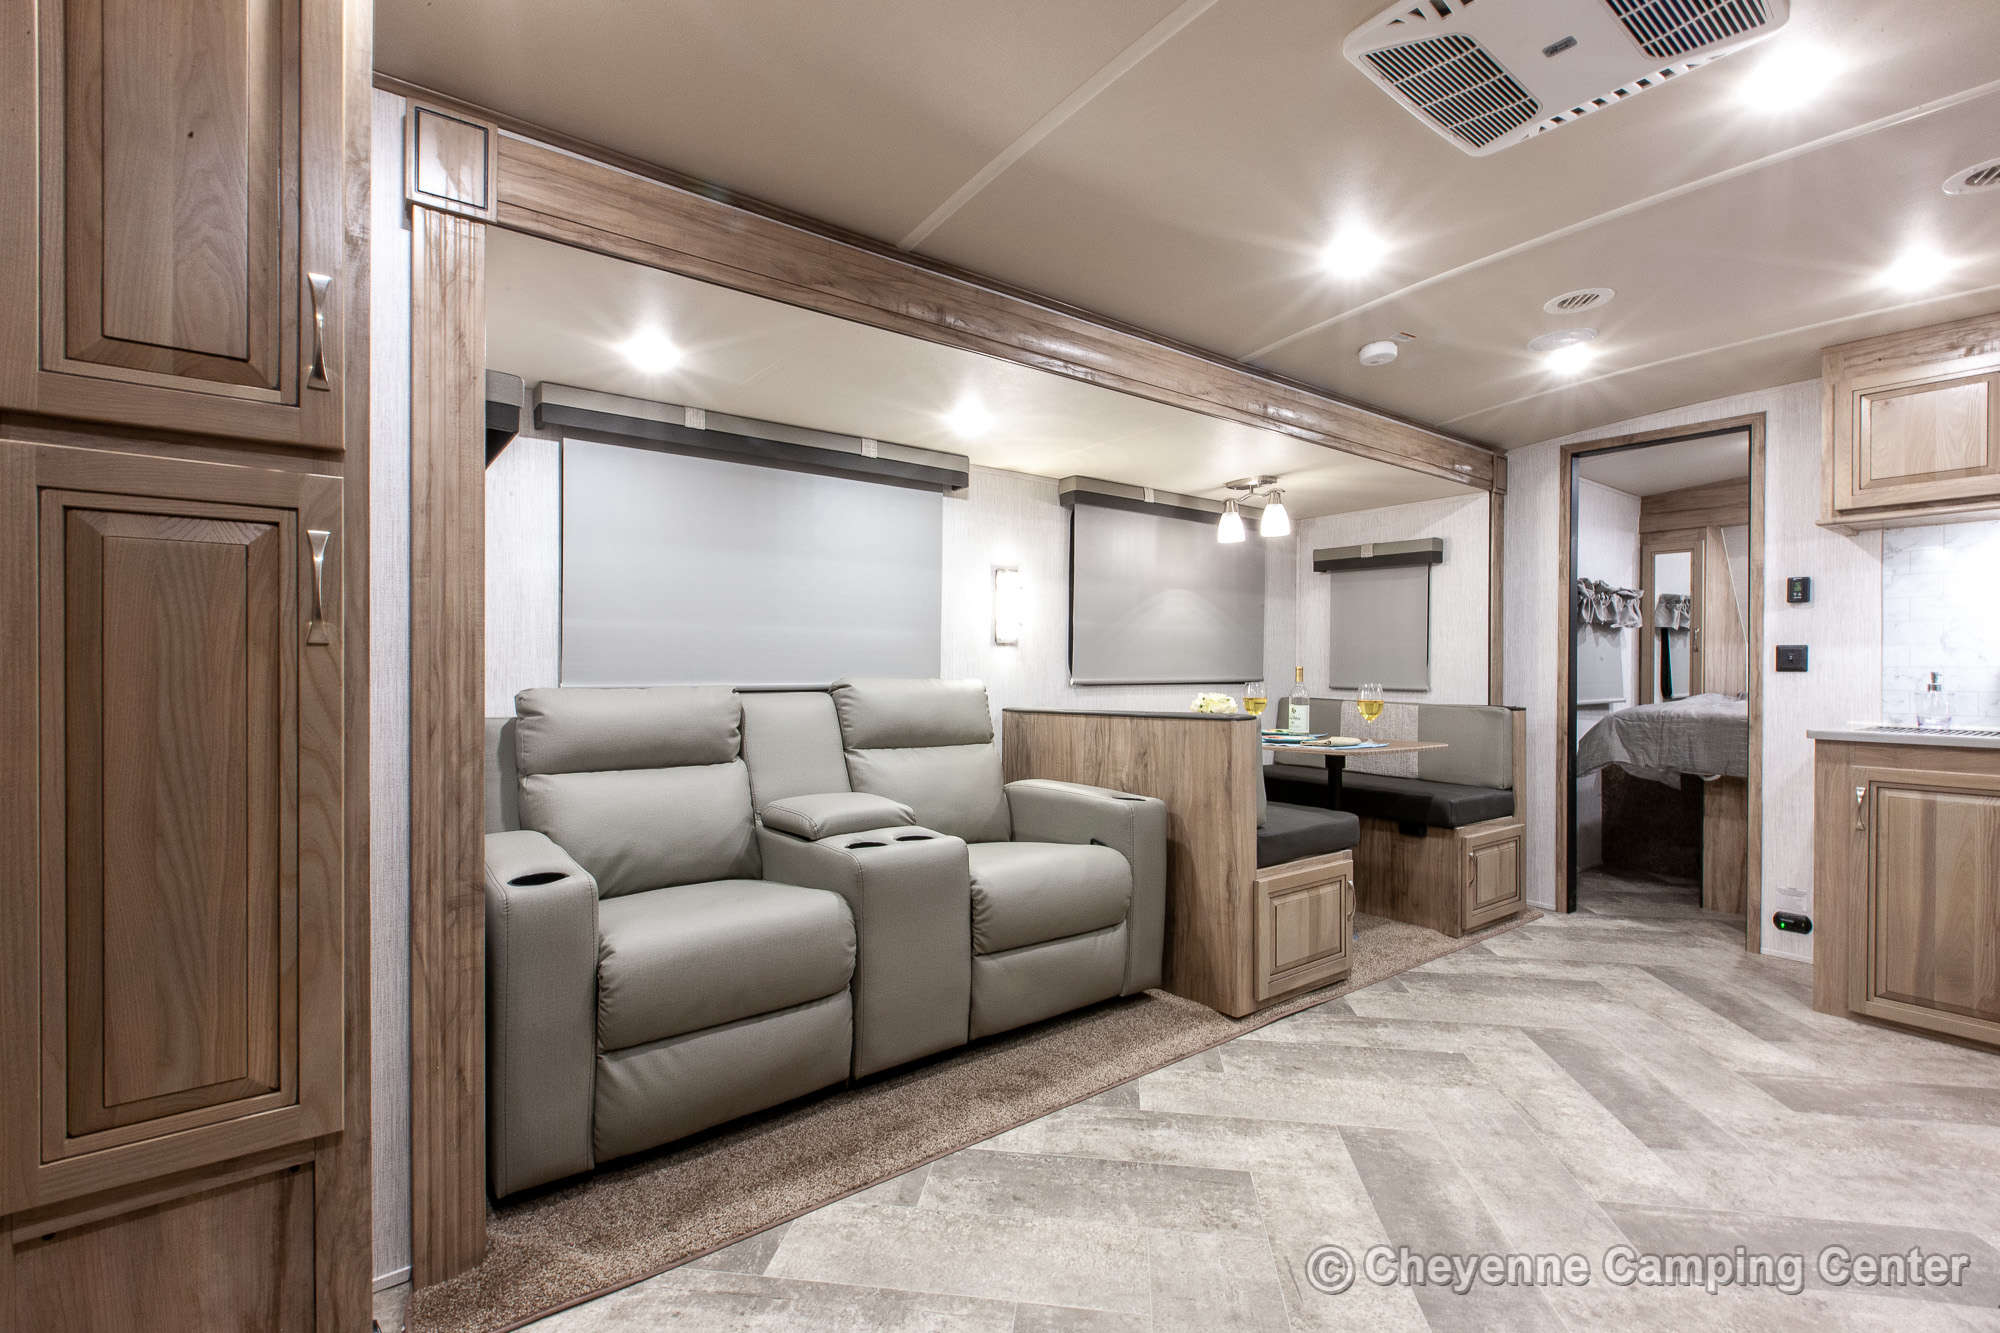 2021 Palomino SolAire Ultra Lite 258RBSS Travel Trailer Interior Image